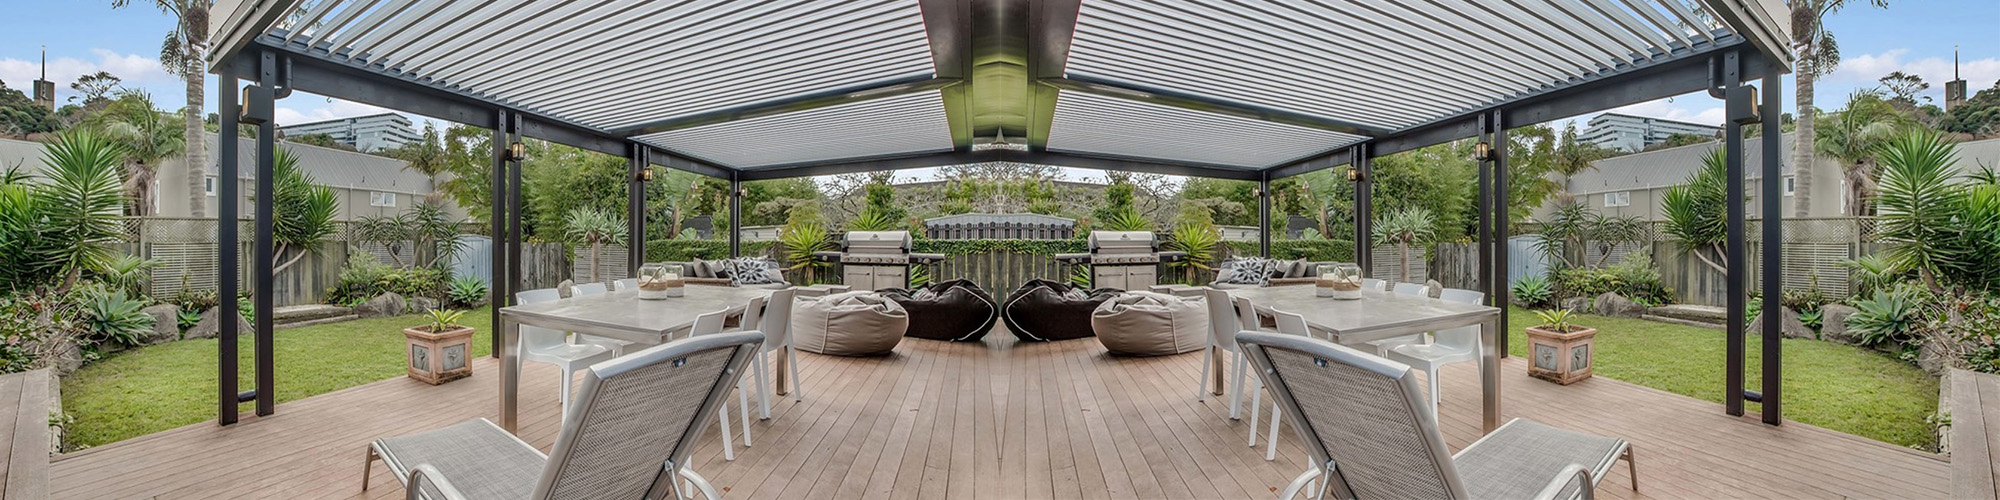 Pergolas   Add a Roof to Your Deck   EzyDeck